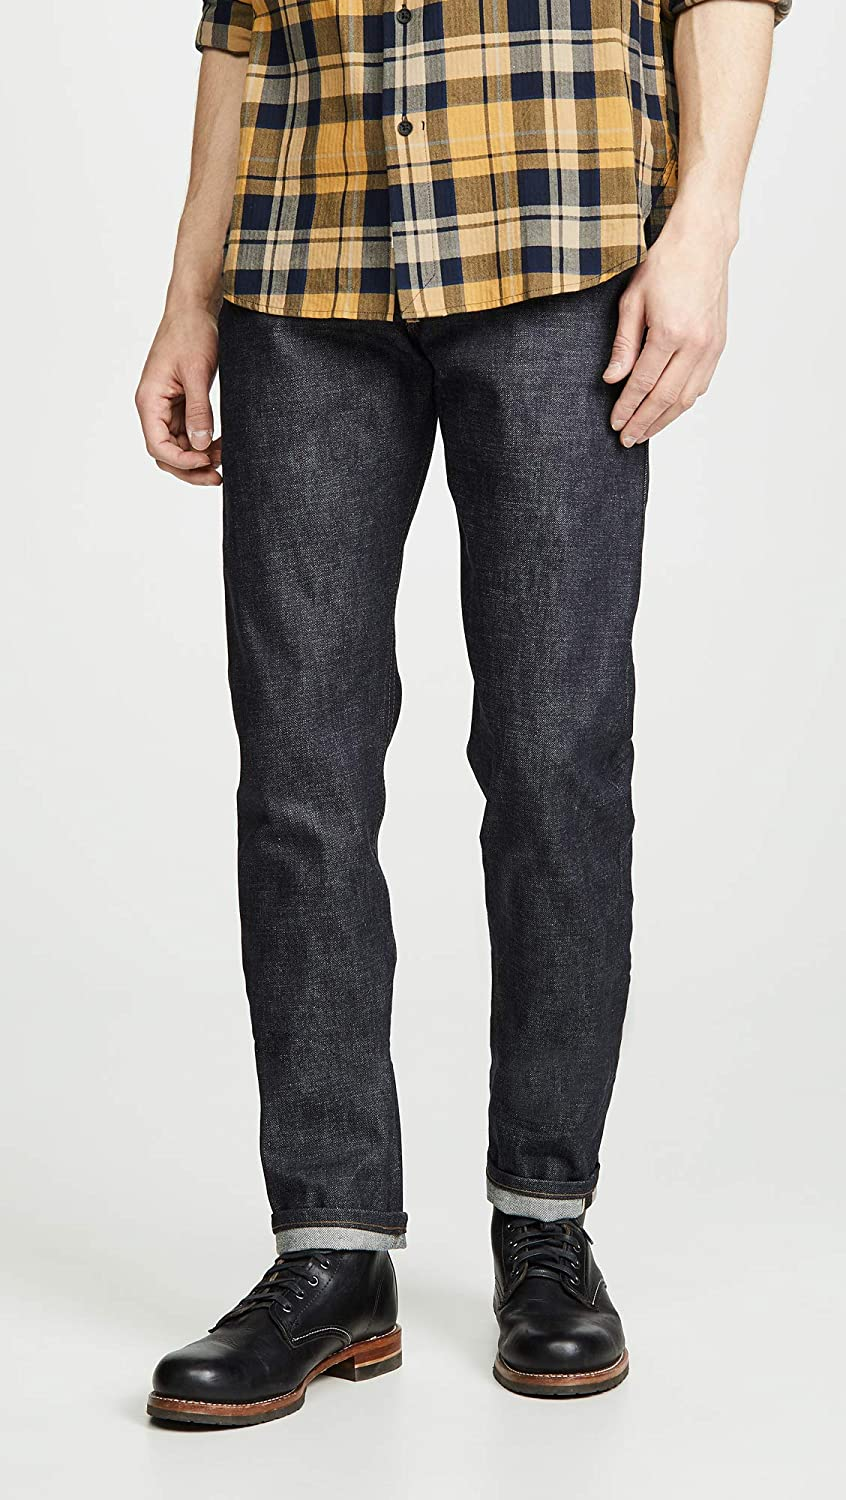 Naked /& Famous Mens Earth Pig Weird Guy Jeans